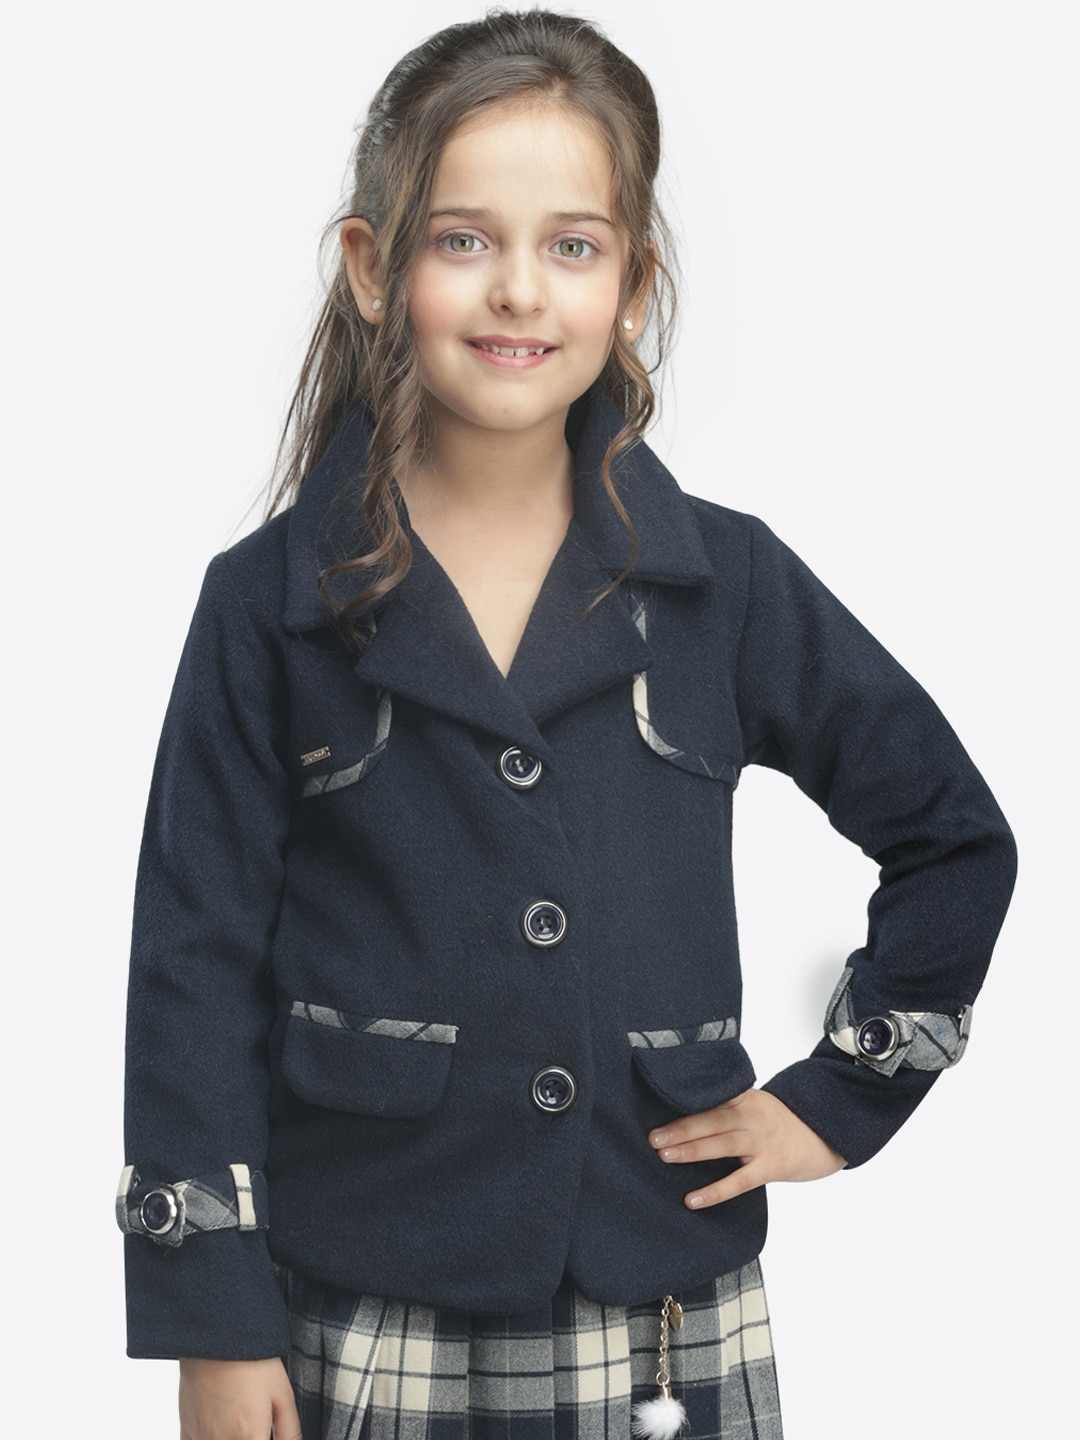 c993a6543361 Concealer Coat - Buy Concealer Coat online in India